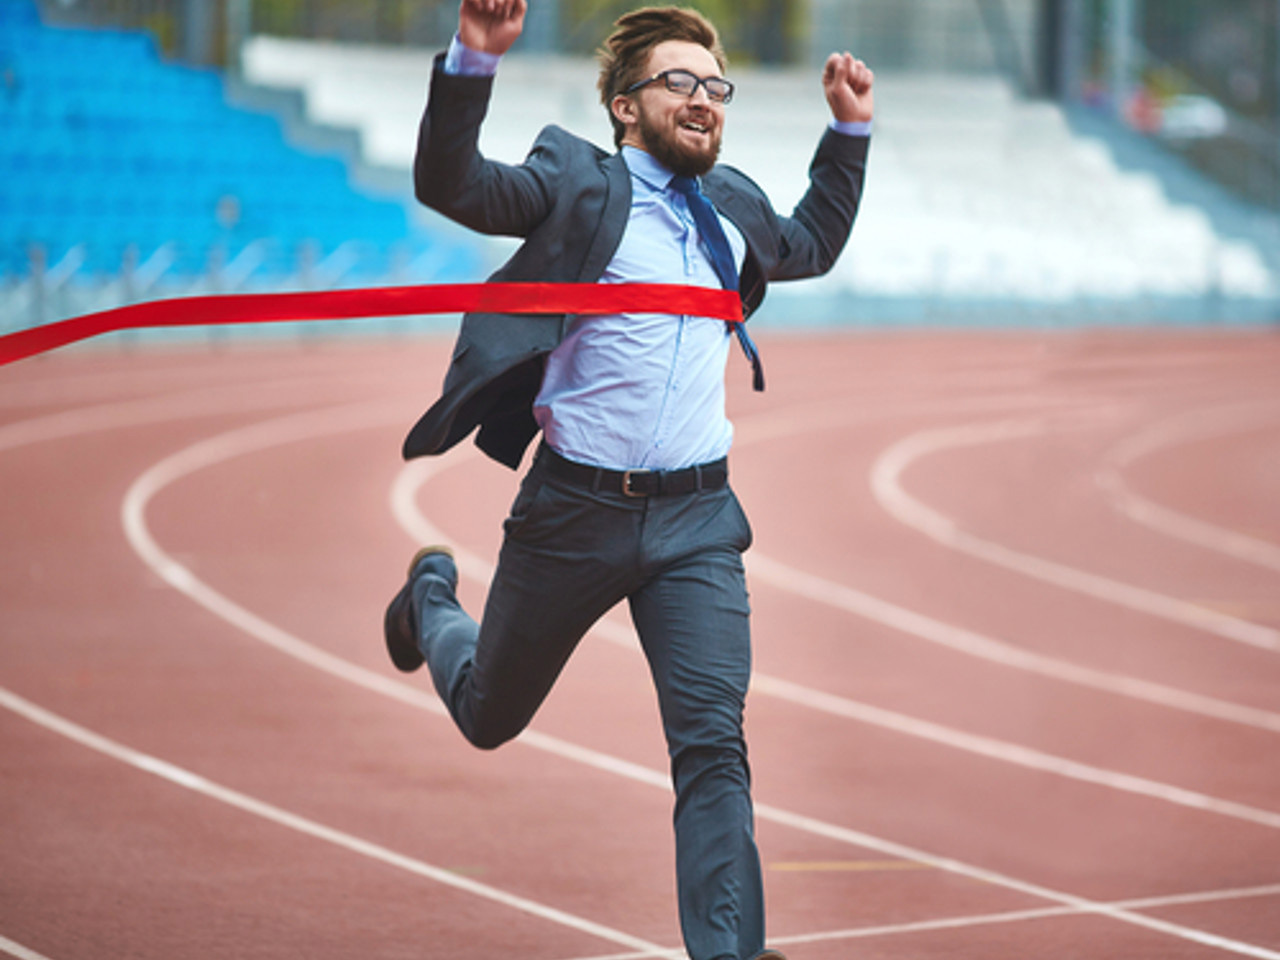 What Sales Professionals Have in Common With Olympic Athletes